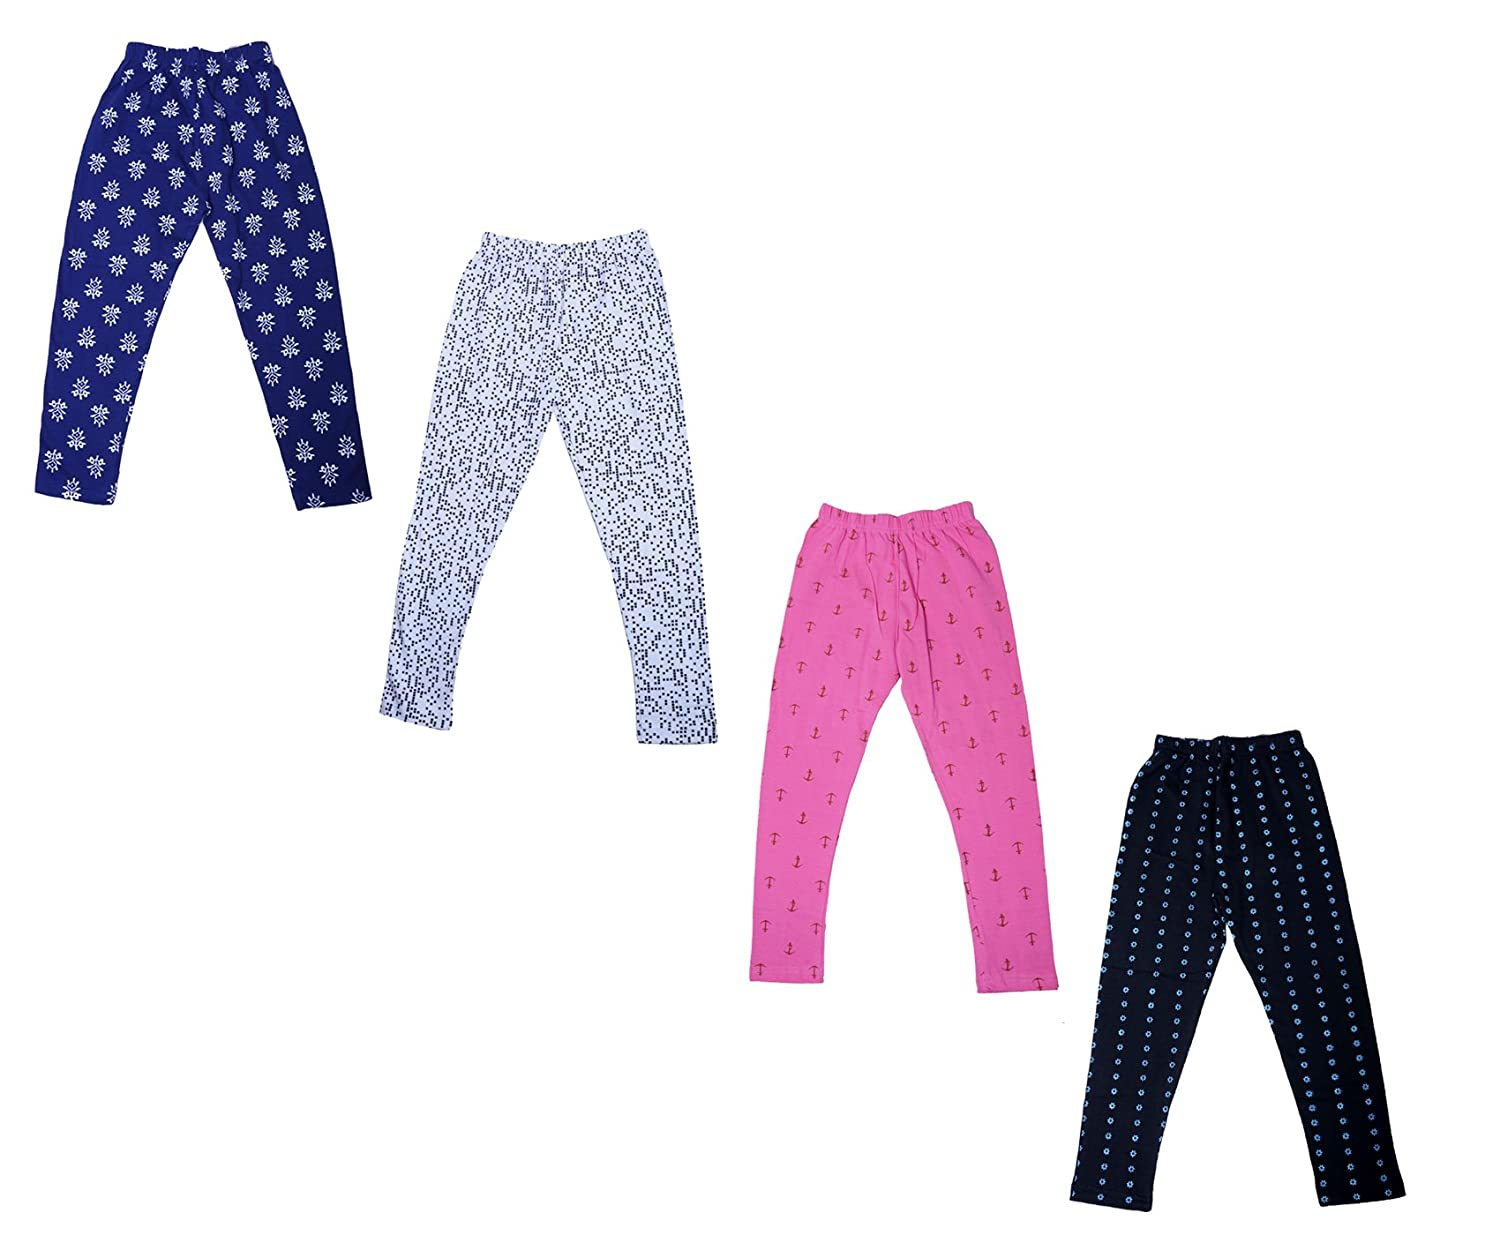 Indistar Girls Super Soft and Stylish Cotton Printed Churidar Legging Pants Pack of 4